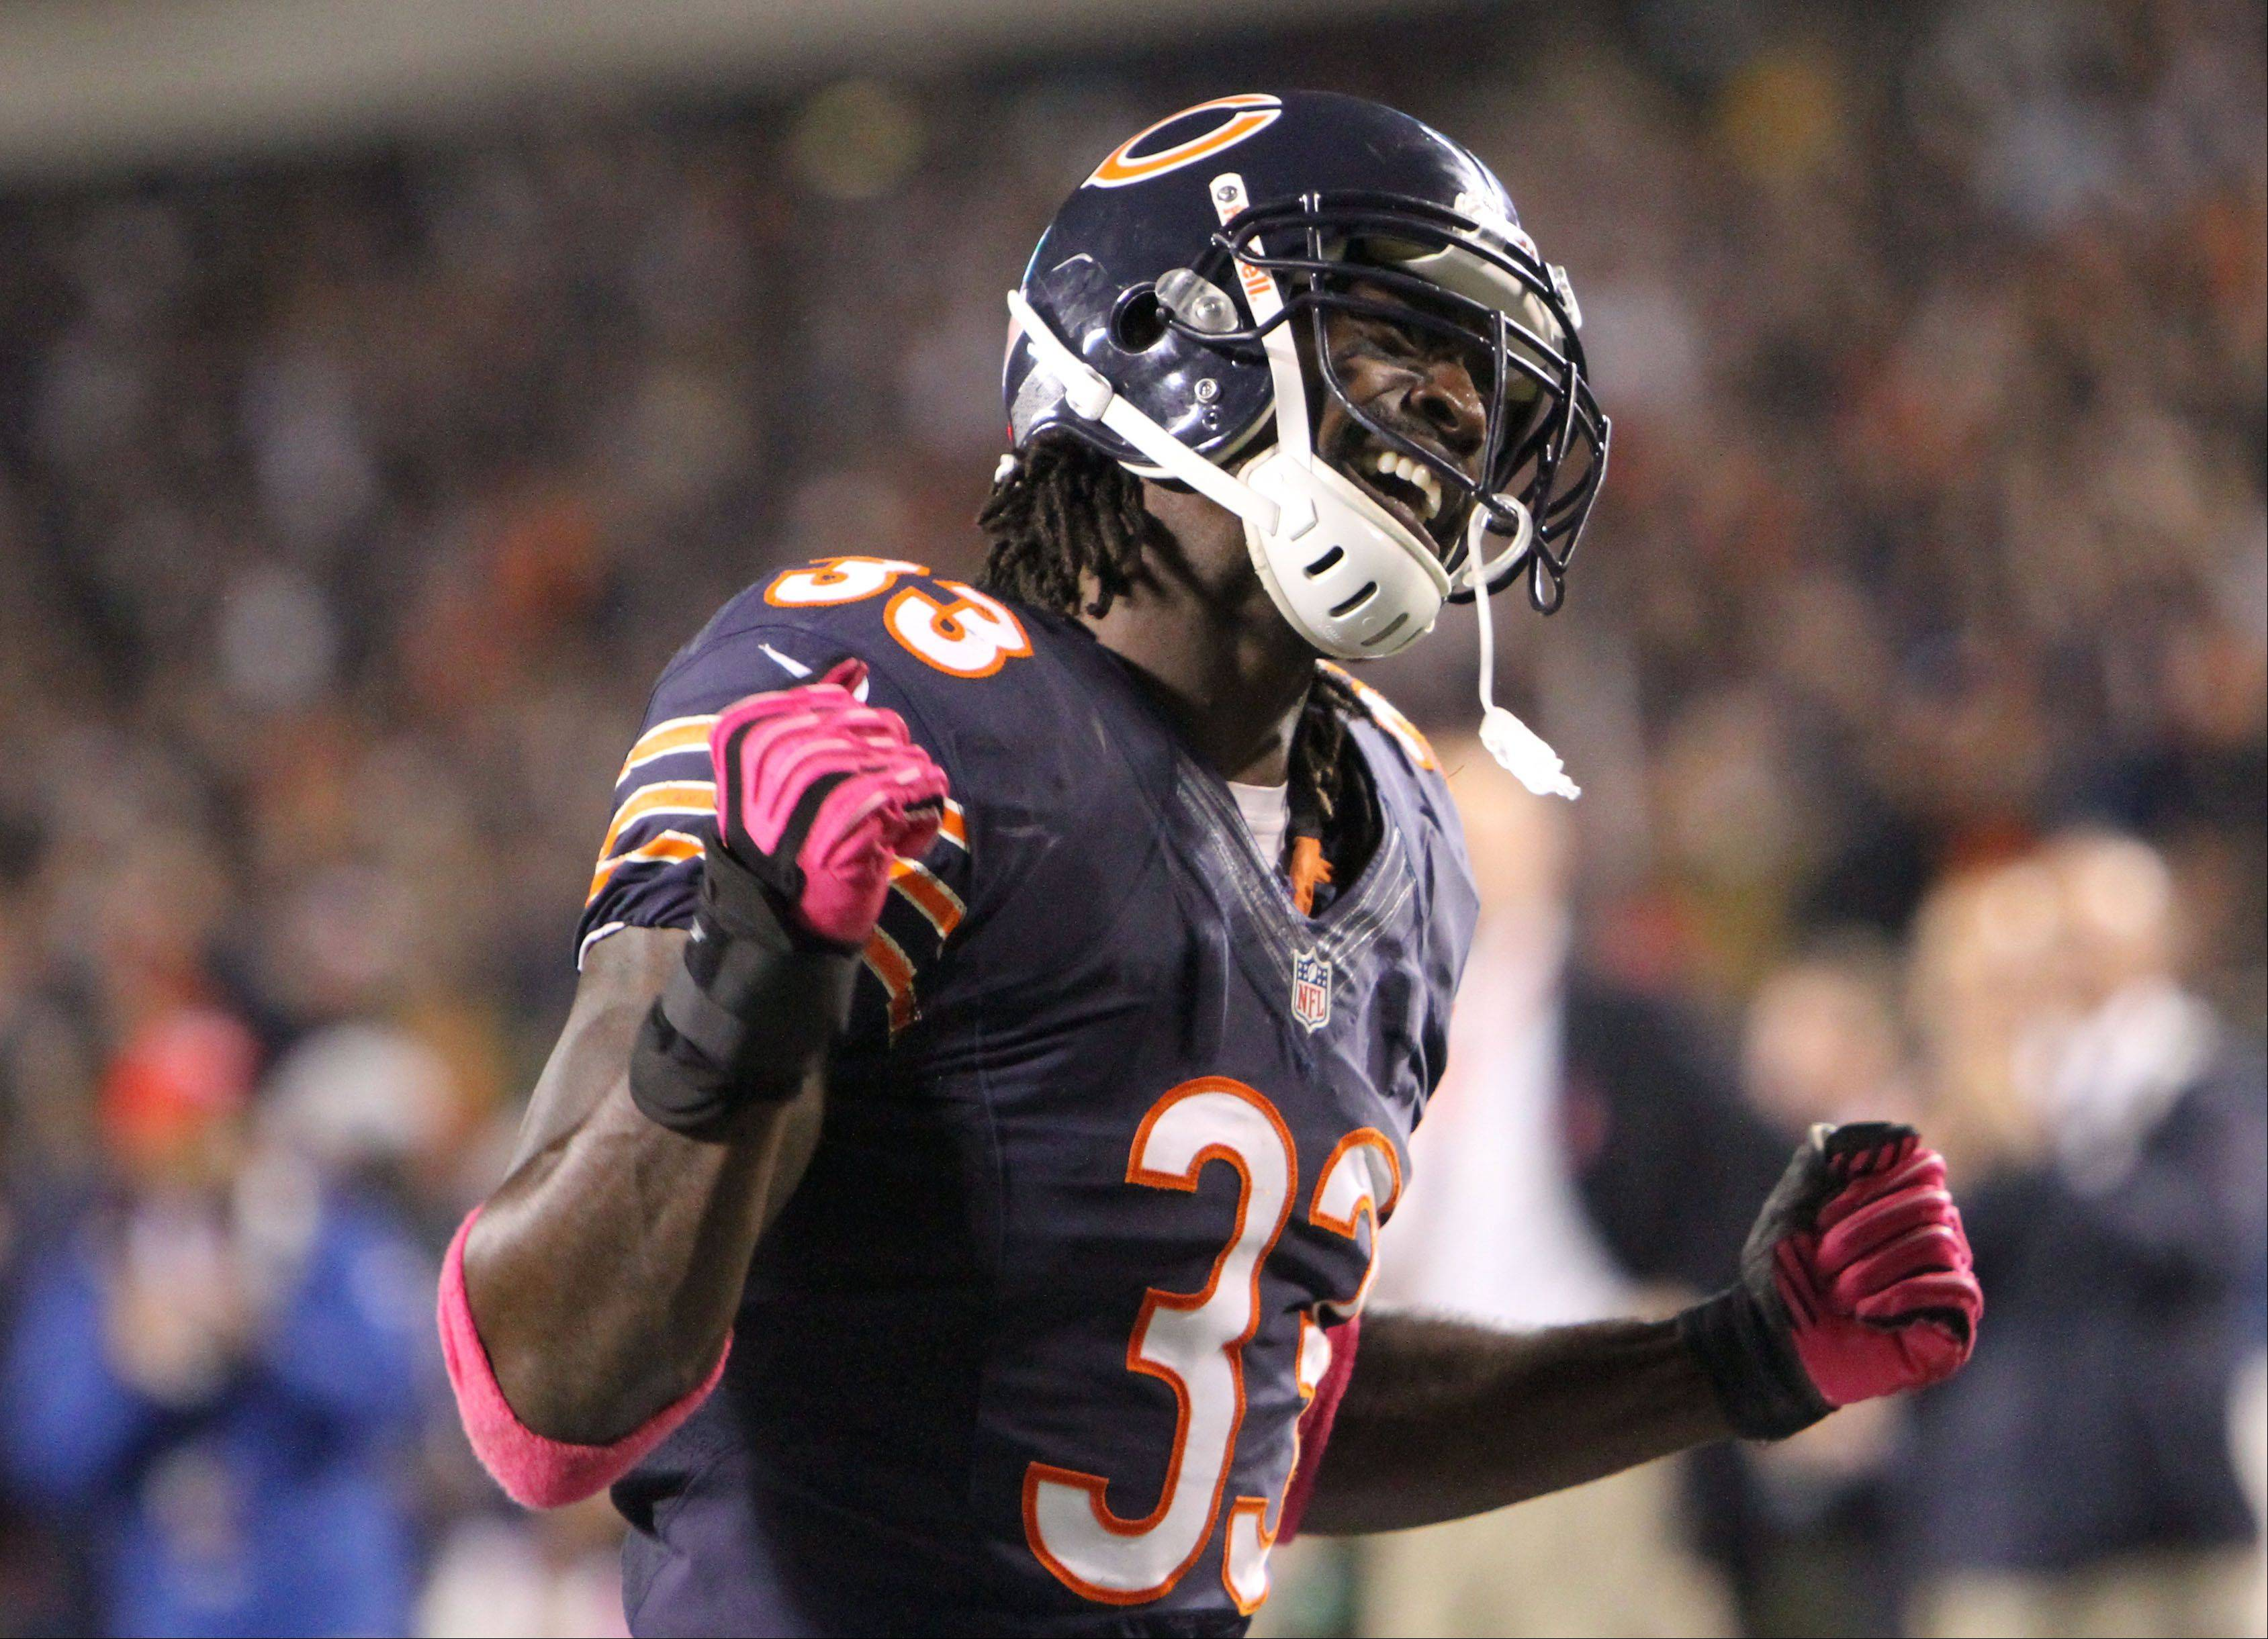 Bears cornerback Charles Tillman led the NFL with 10 force fumbles last season, and he added 3 interception along the way.